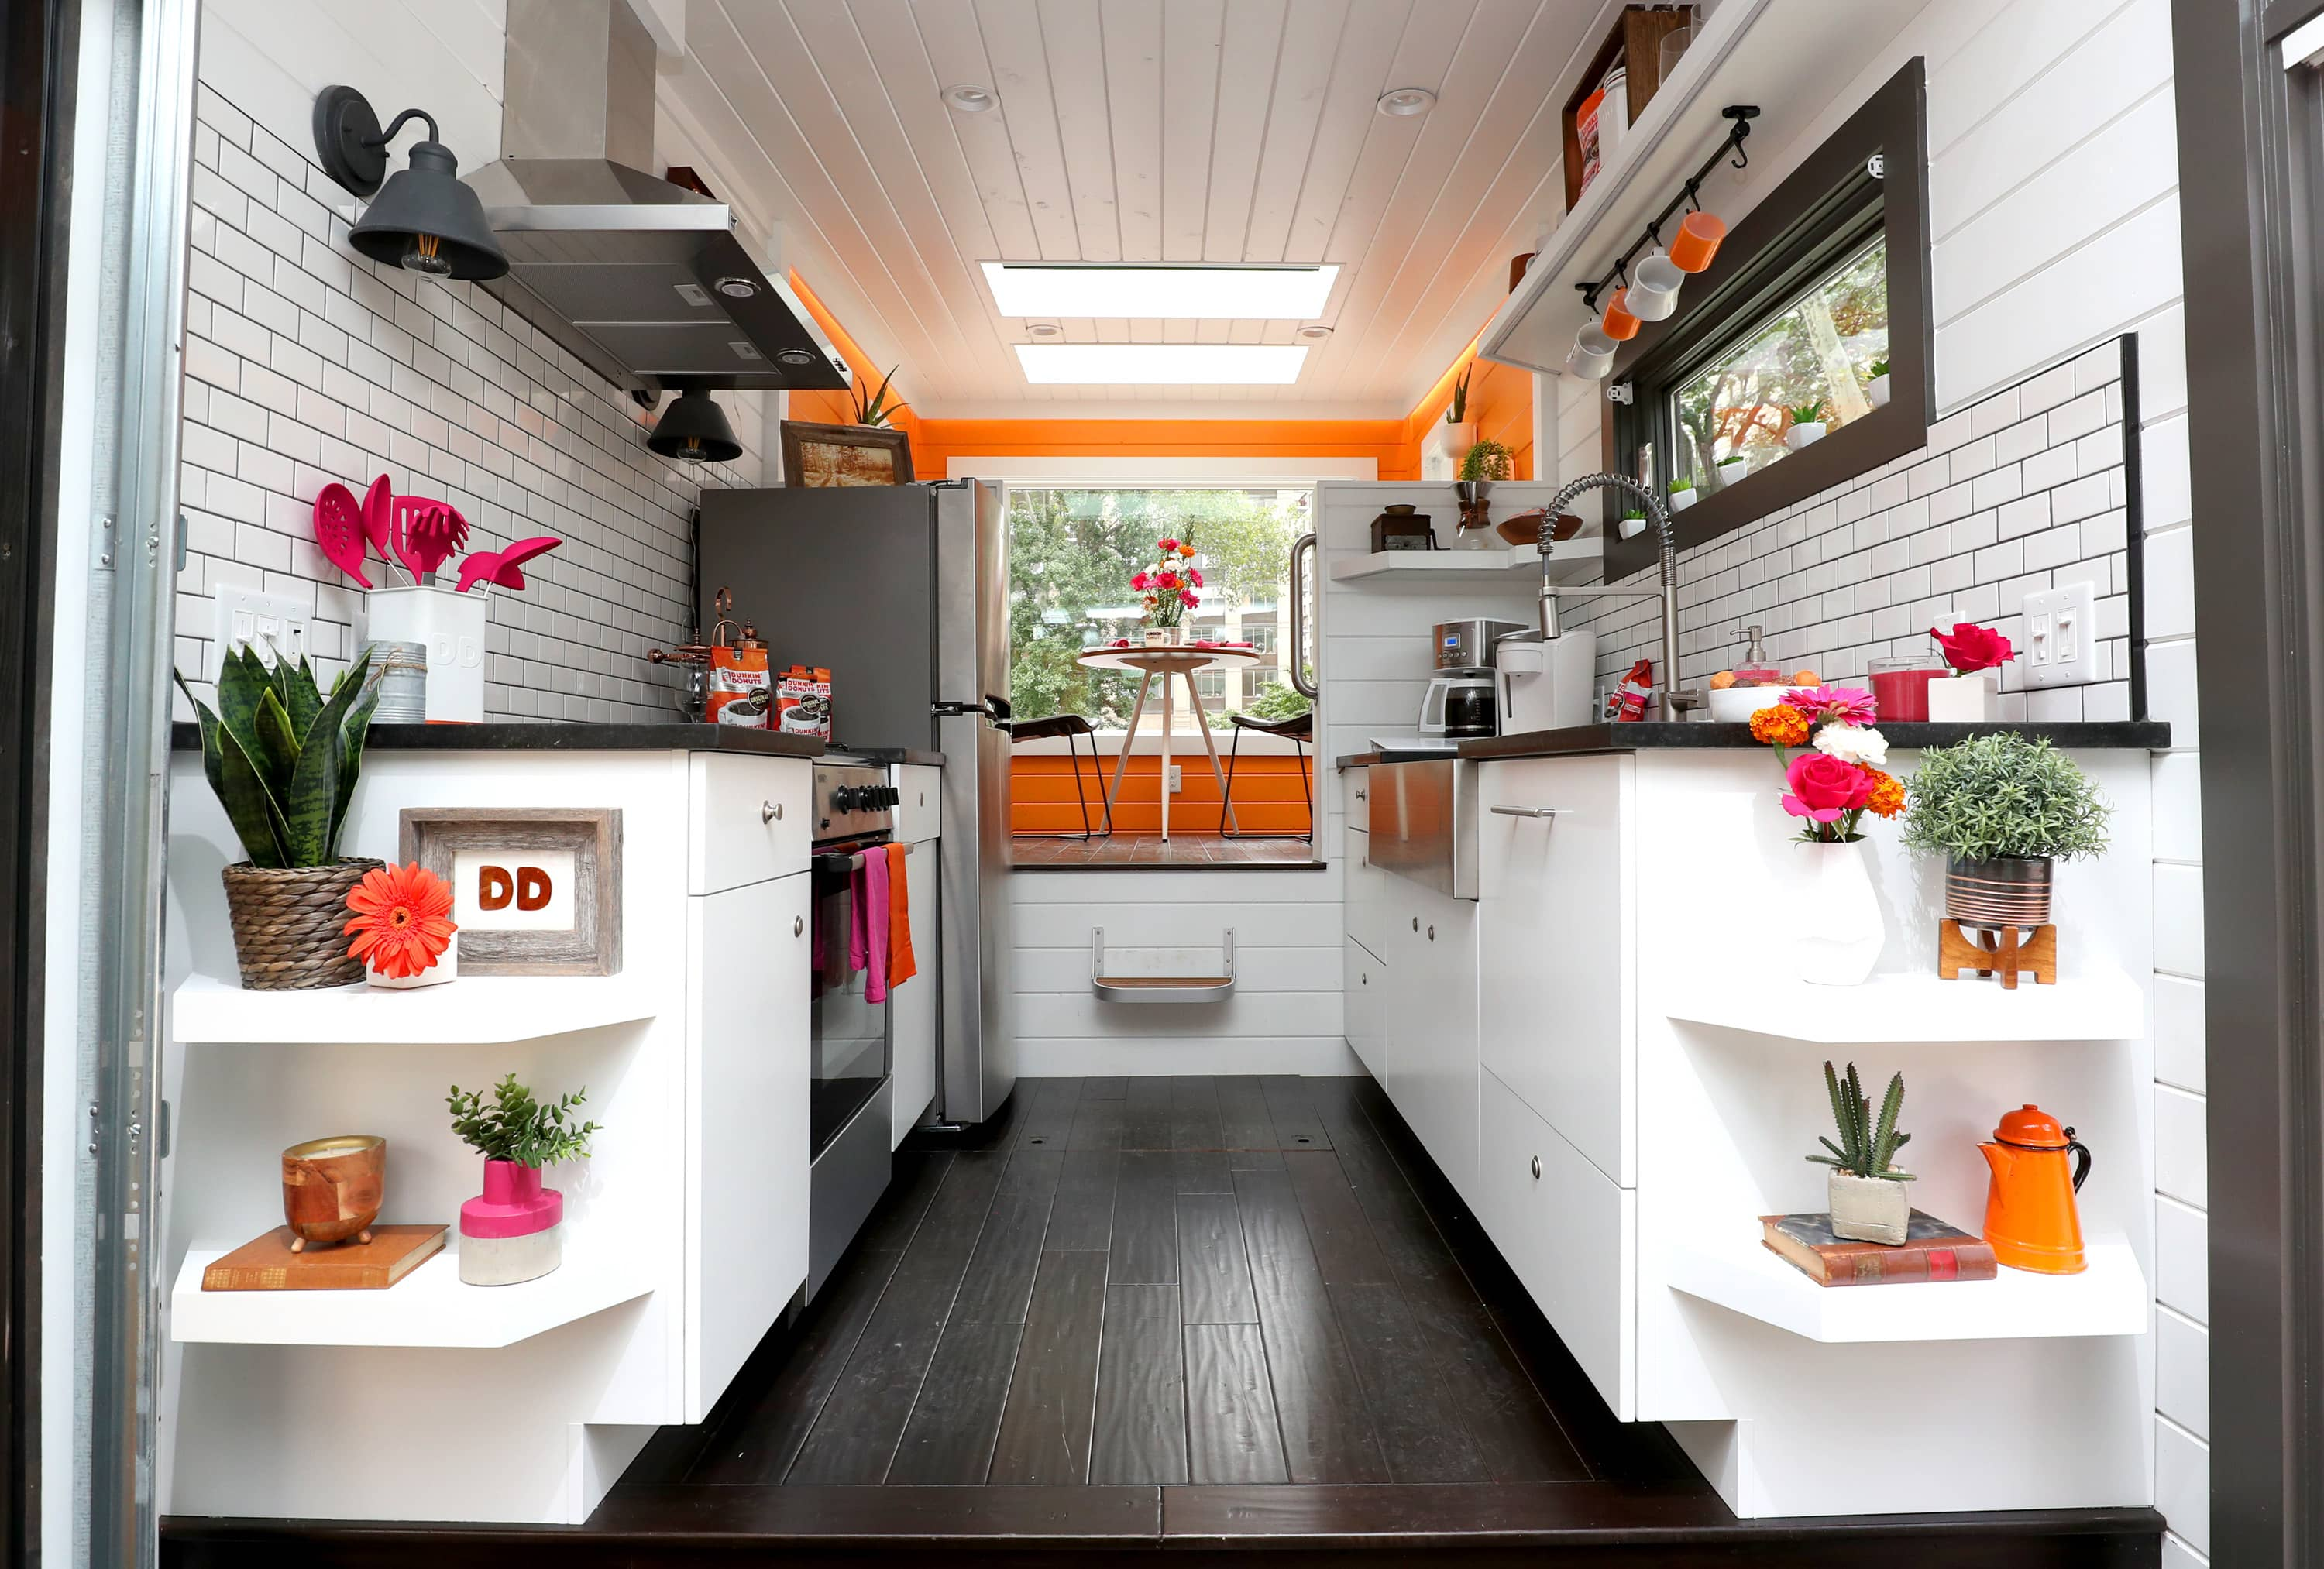 Rent Dunkin Donuts Tiny House On Airbnb For Just $10